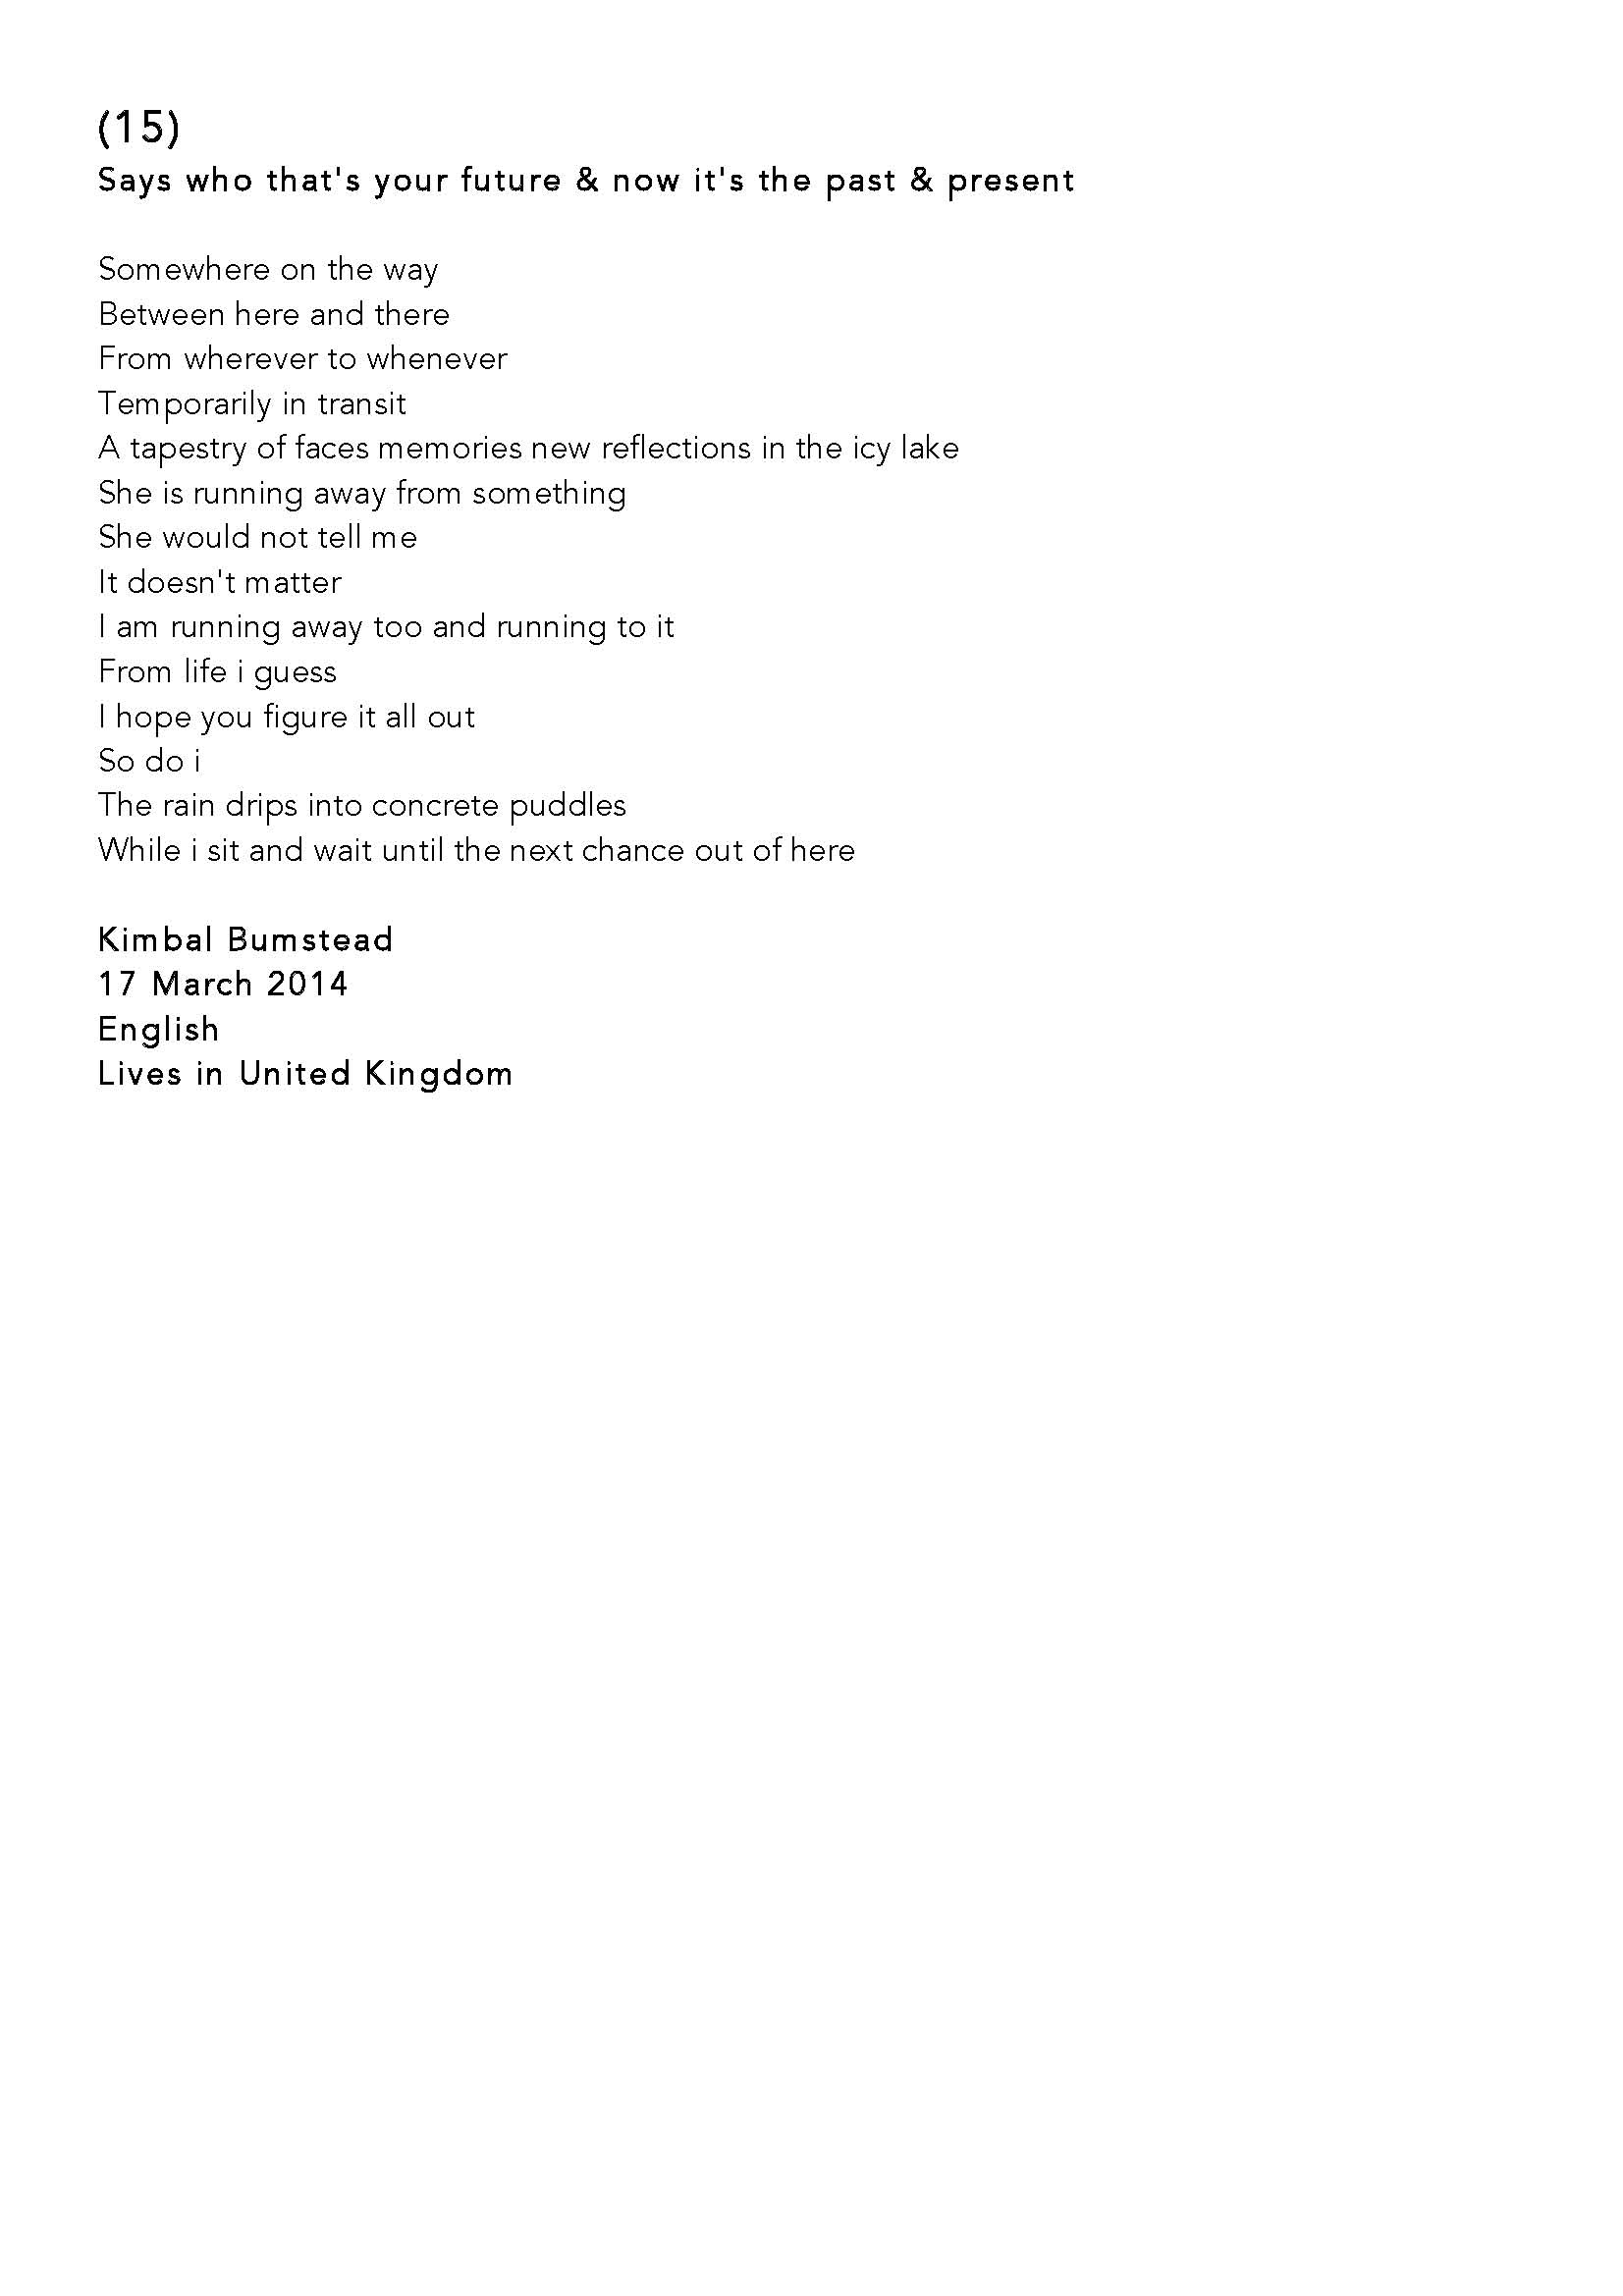 Poetry Collection - Everyone can Poetry_March 2014_Page_15.jpg